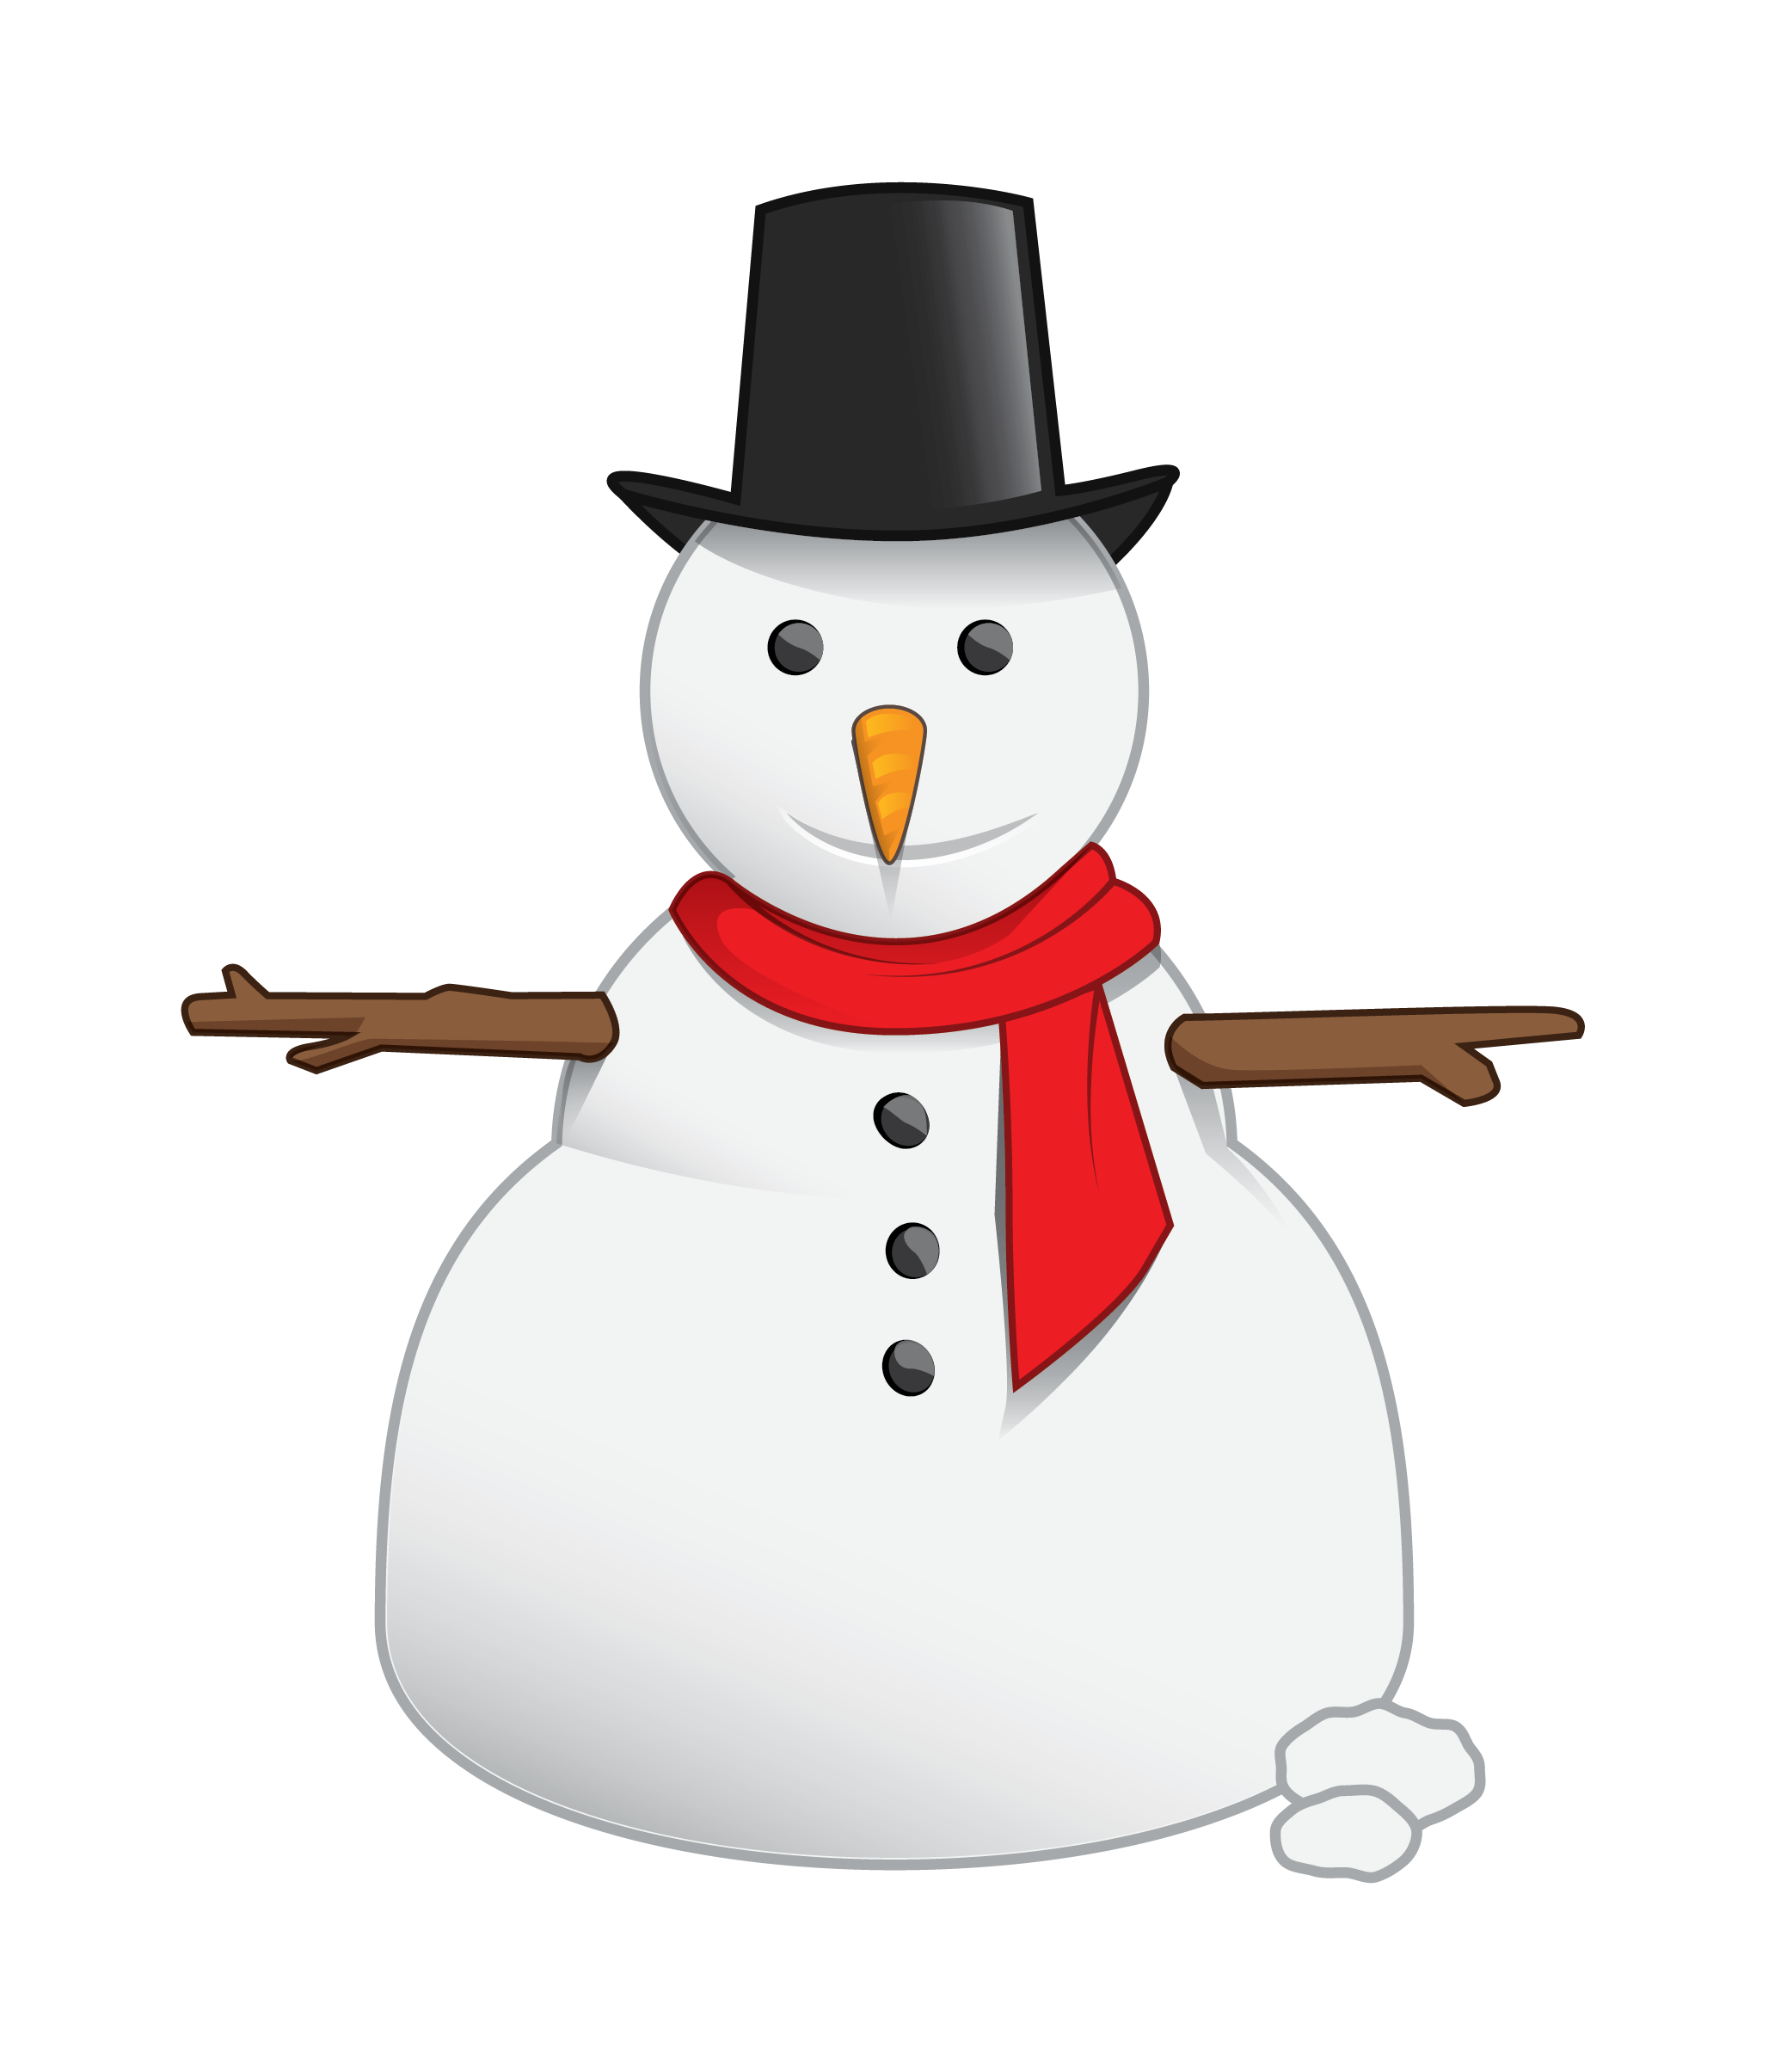 Snowman clipart basic Cliparting clipart free Free clipart